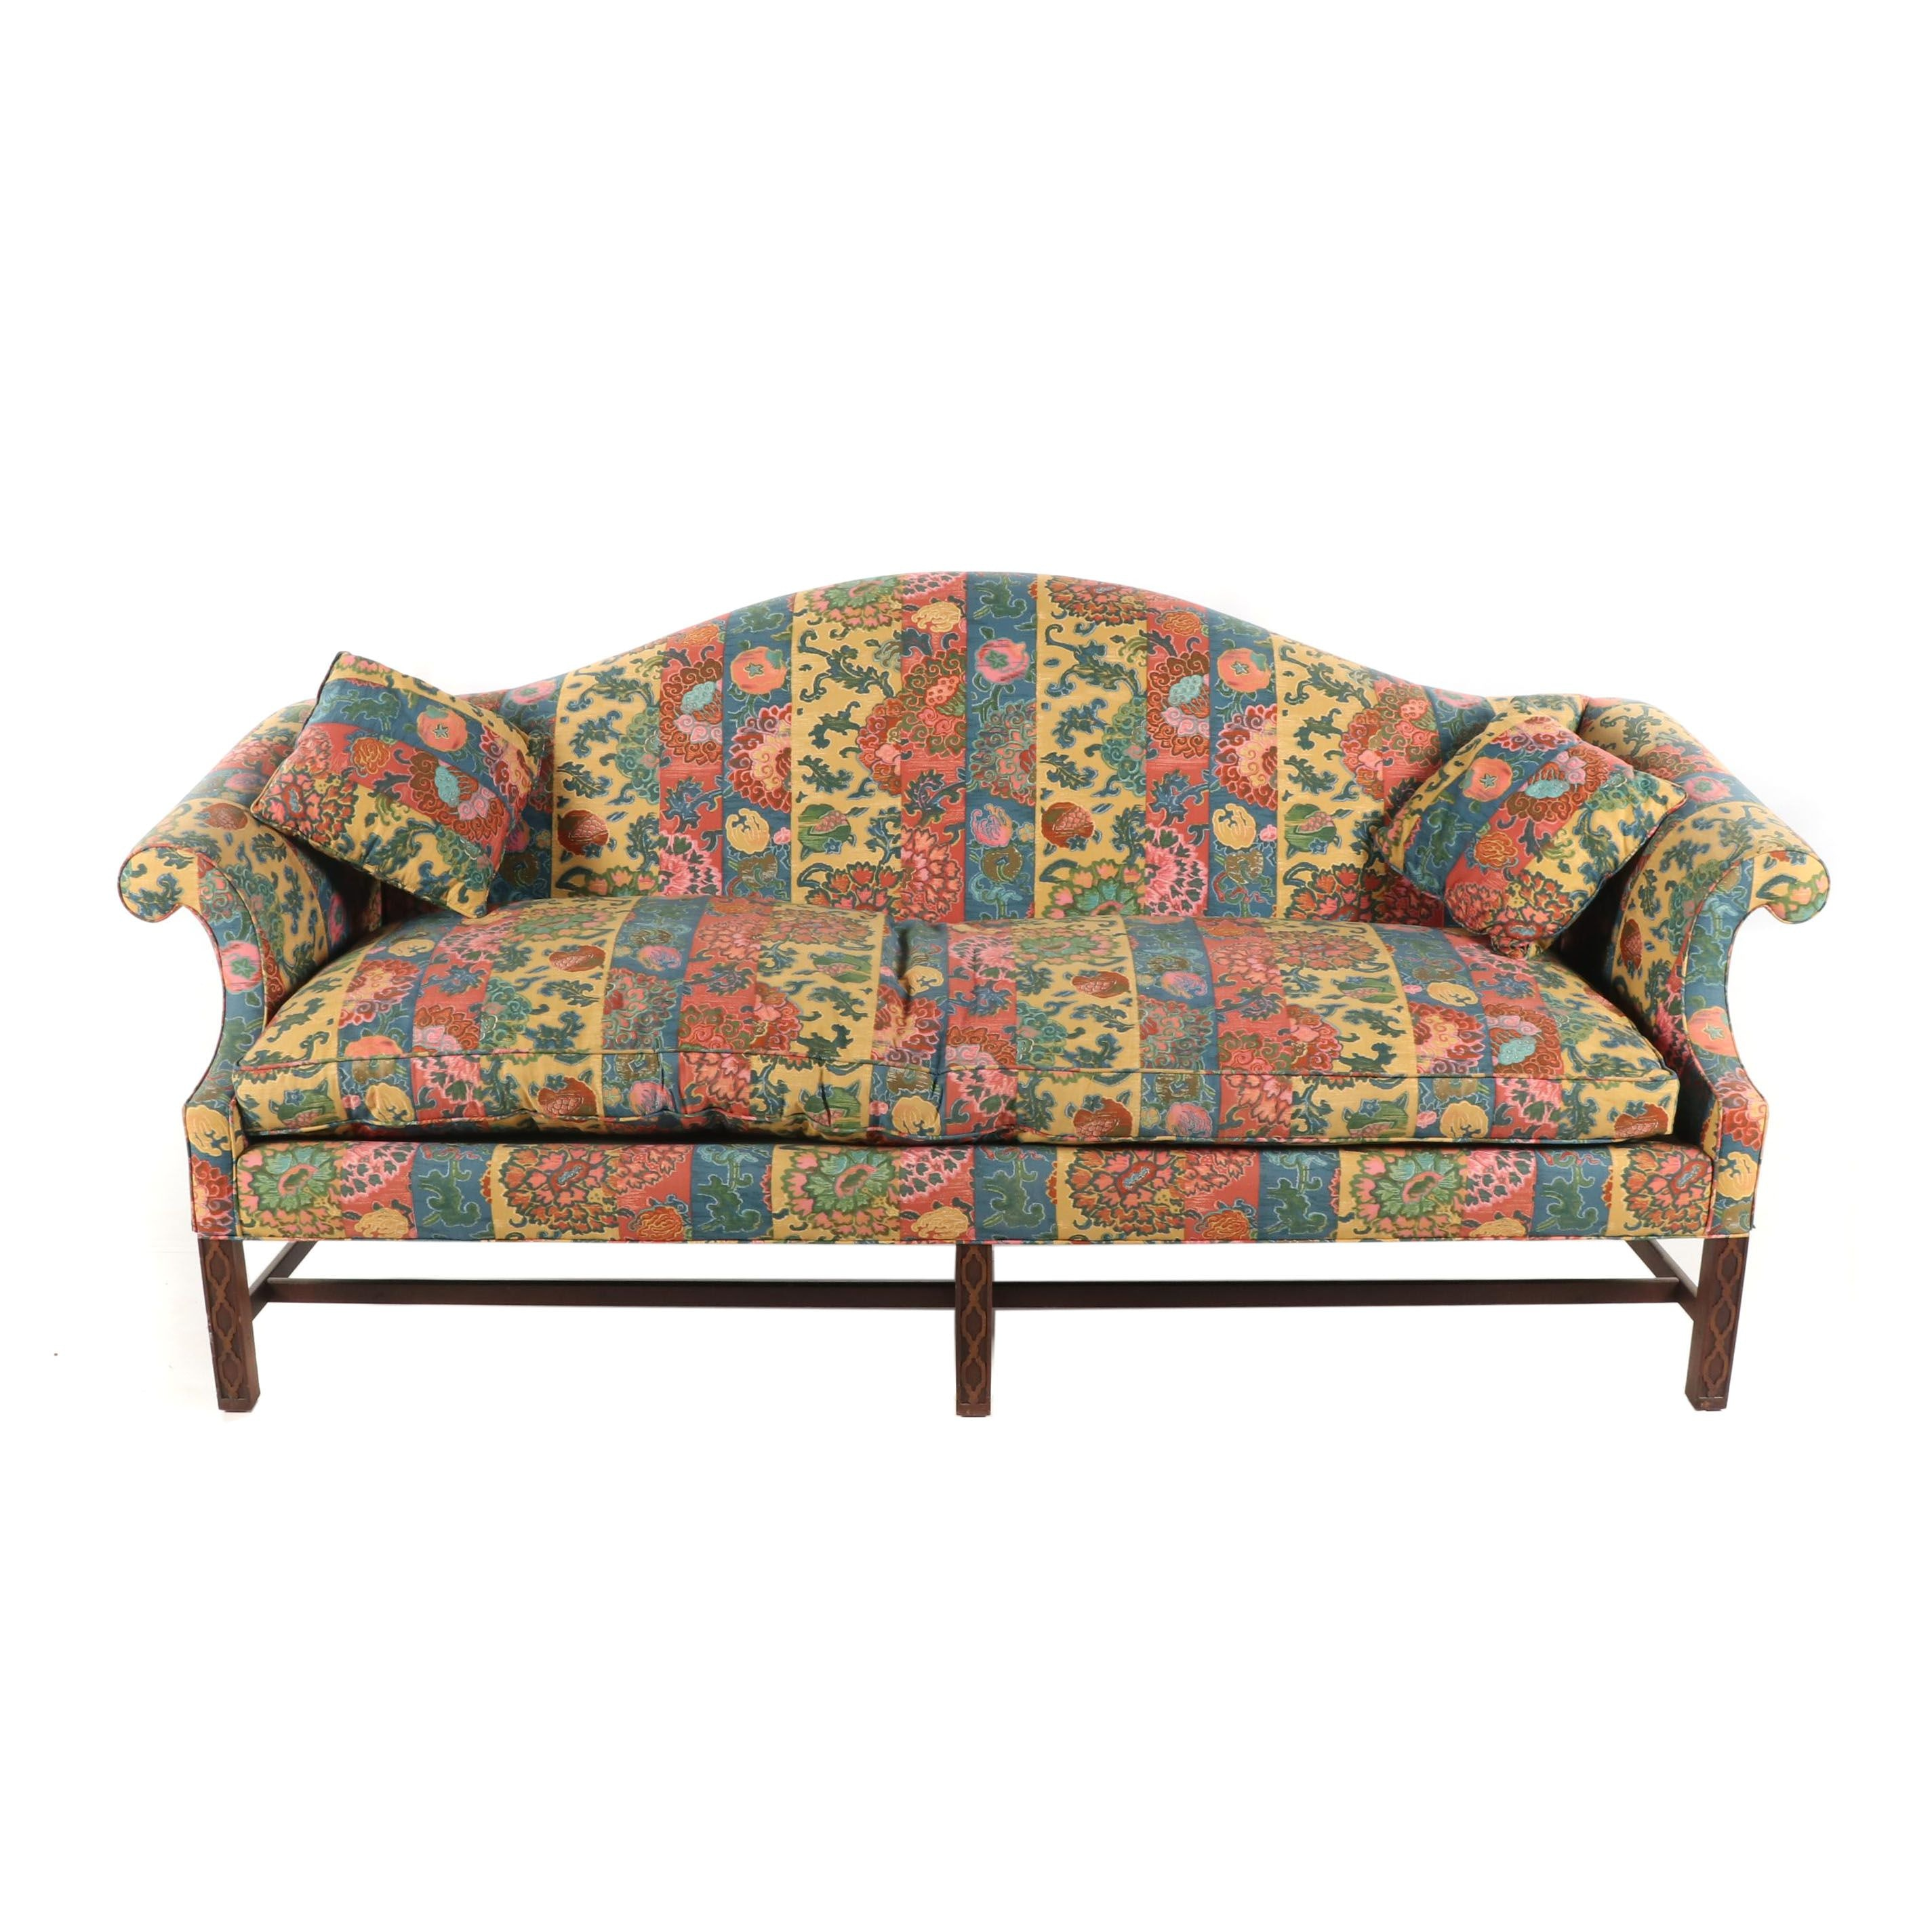 Federal Style Upholstered Camelback Sofa, Late 20th Century